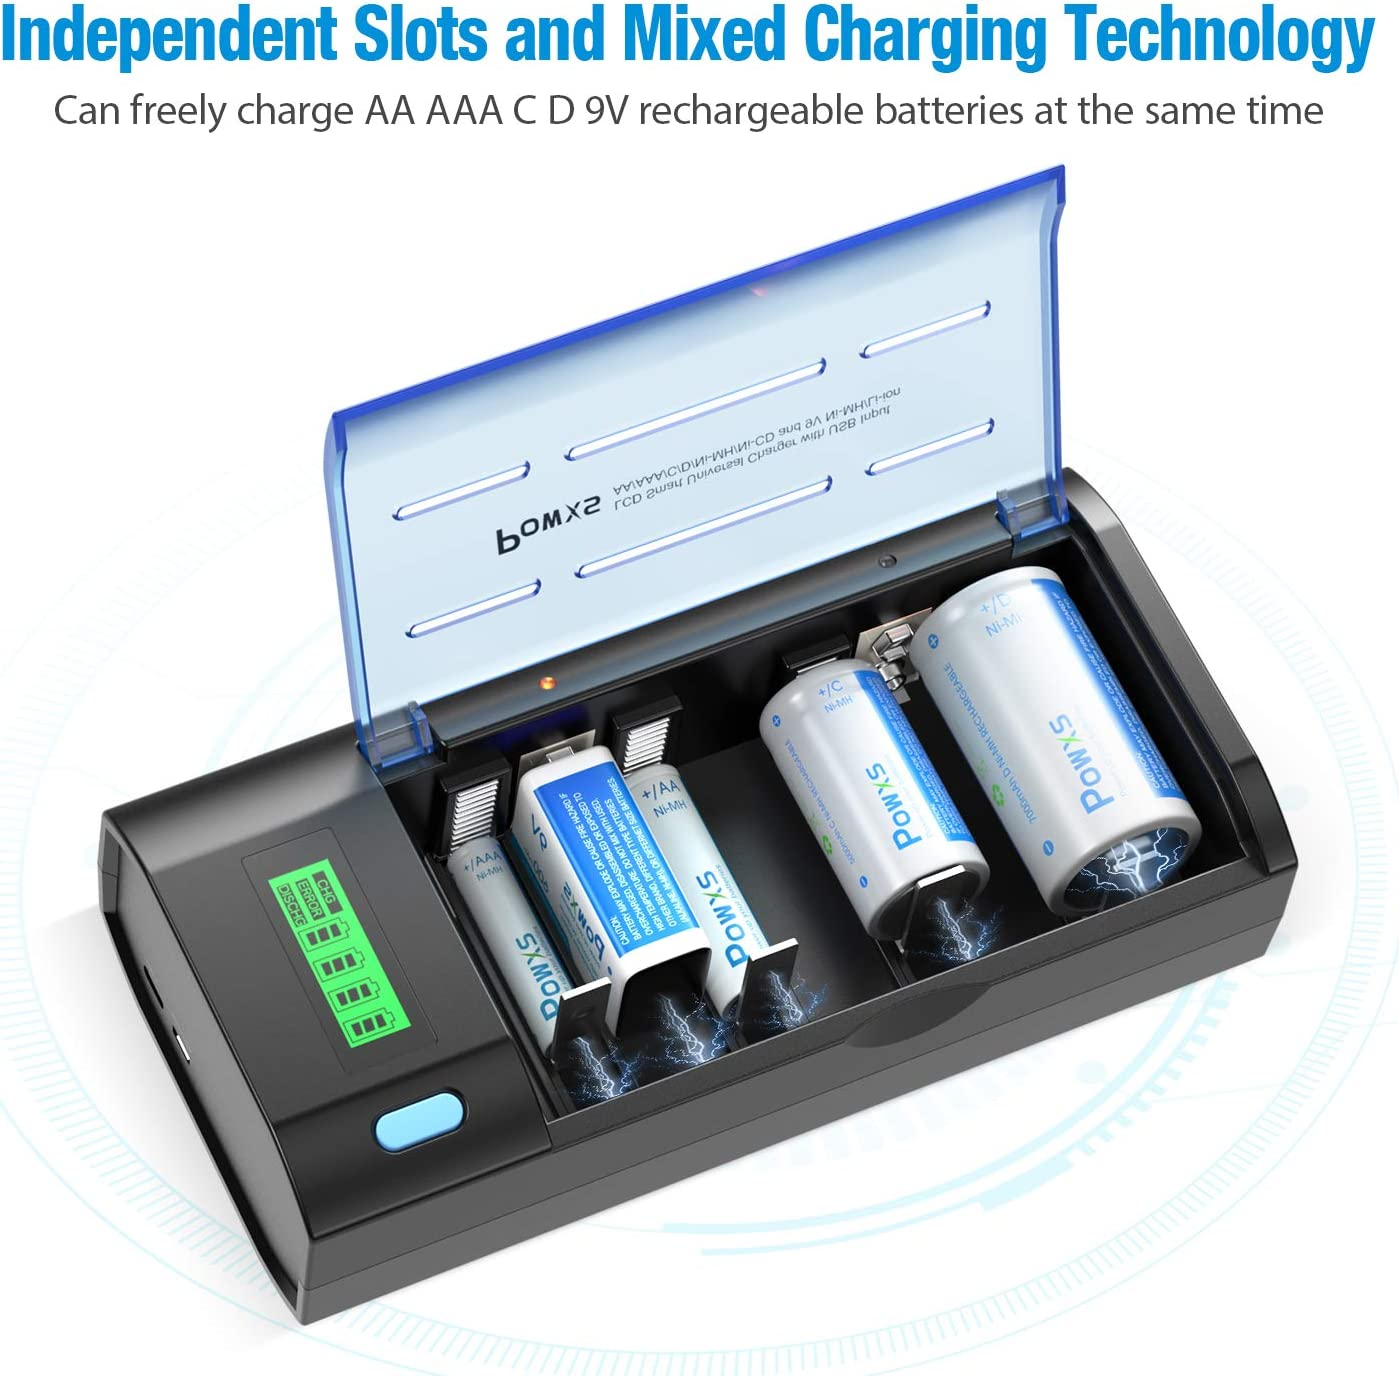 POWXS LCD Upgrade 12 Bay AA AAA 9V Battery Charger for Ni-MH Ni-CD Rechargeable Batteries